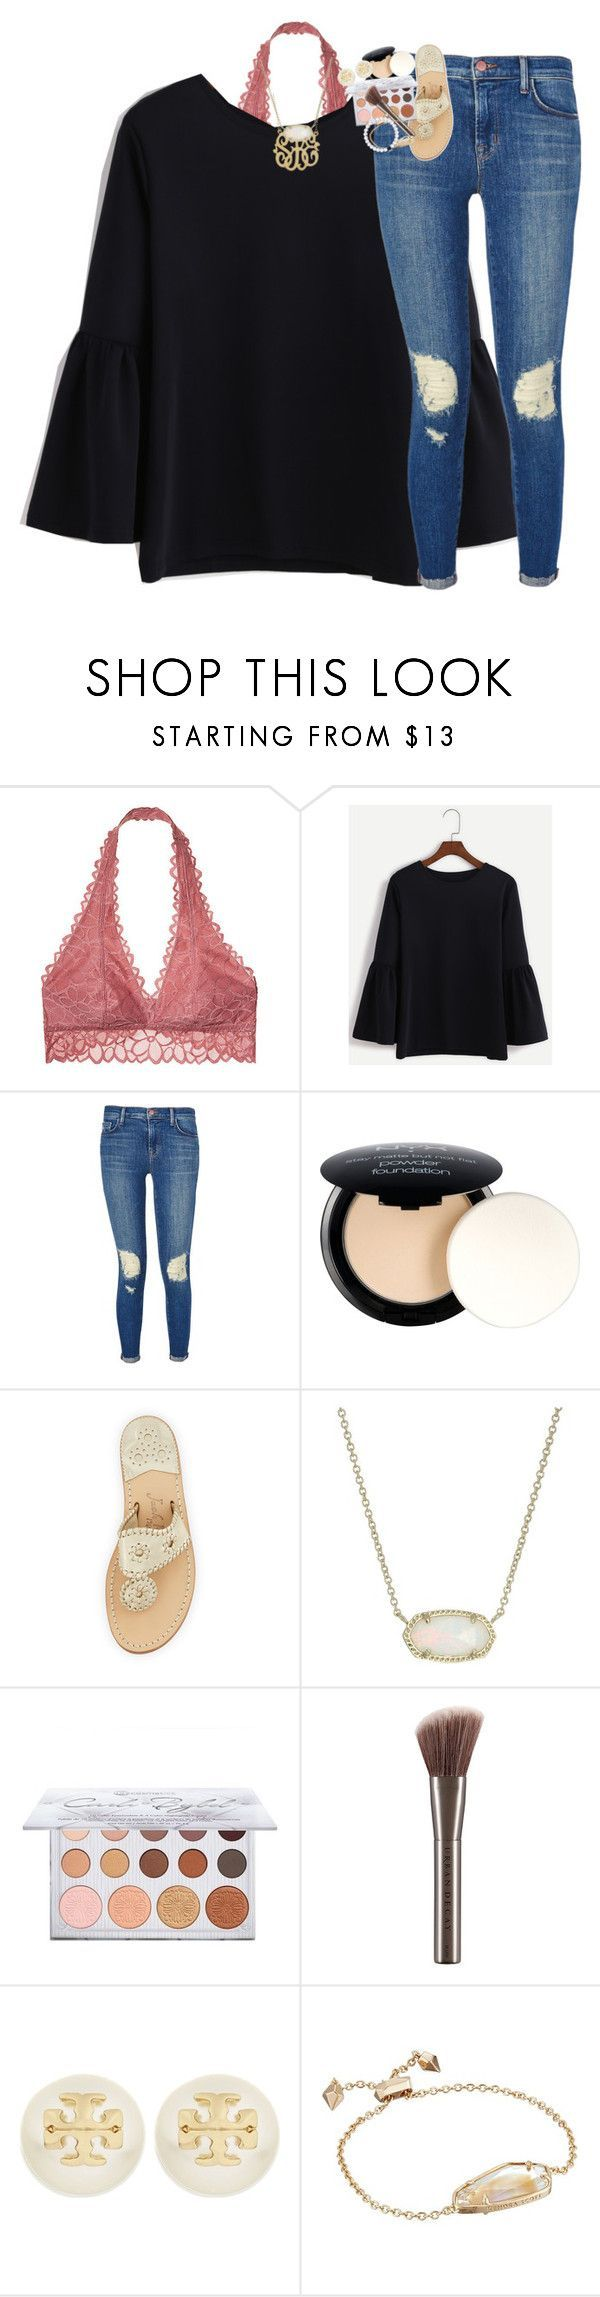 """A little bit dangerous, but, baby, that's how I want it"" by classynsouthern ❤ liked on Polyvore featuring Victoria's Secret, J Brand, NYX, Jack Rogers, Kendra Scott, Urban Decay and Tory Burch"